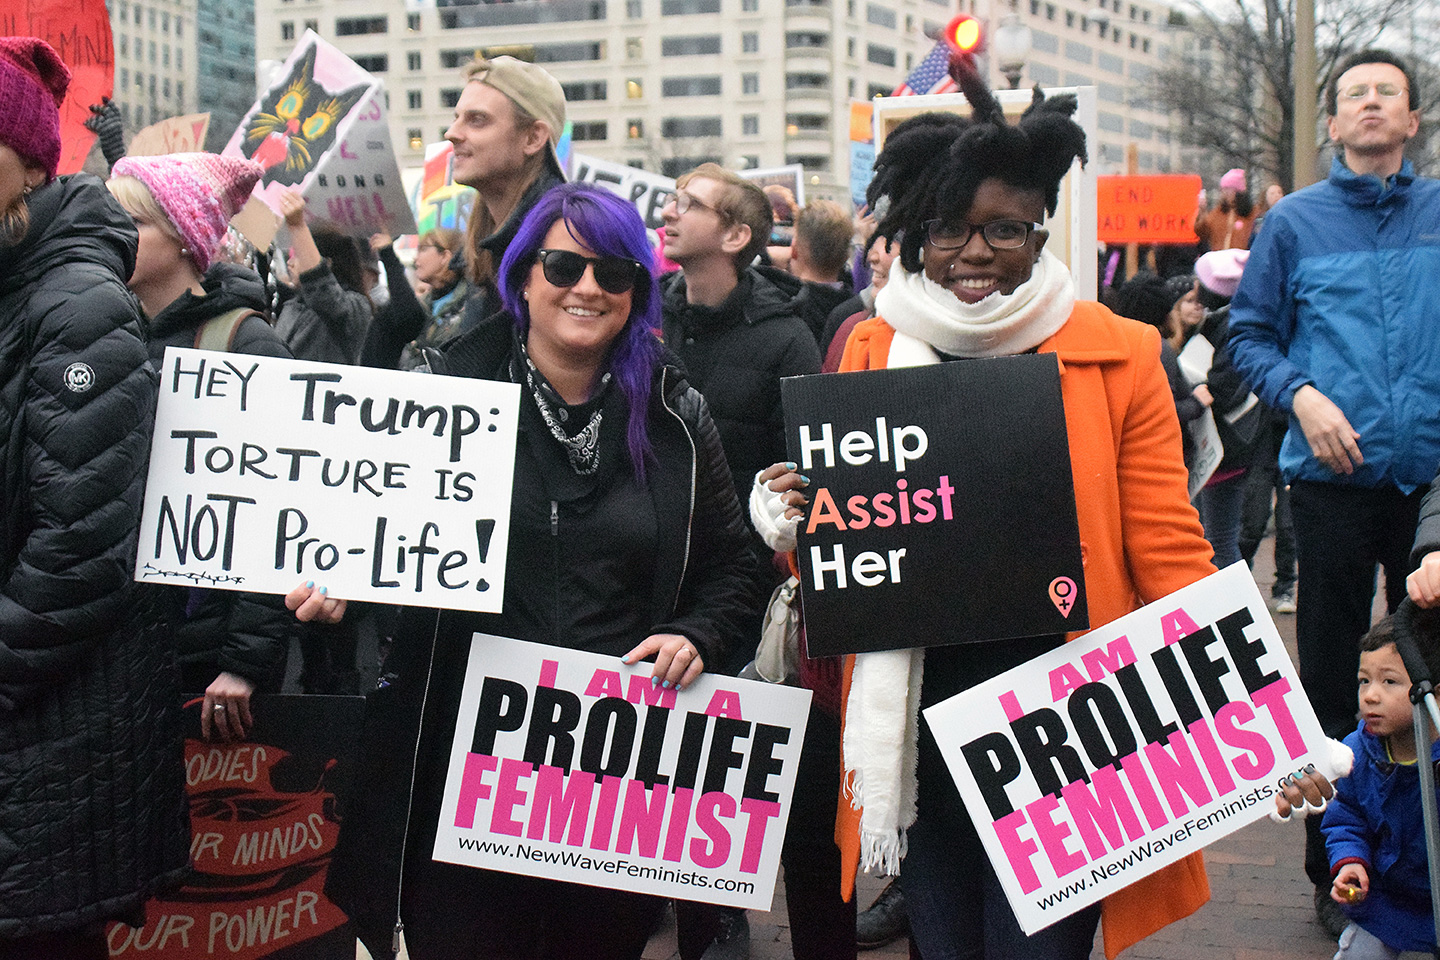 Anti-abortion advocates Destiny Herndon De-La Rosa, the founder of New Wave Feminists, and Cessilye Smith (right) proudly represented a minority opinion at the Women's March on Washington. Their group emphasizes that being pro-life and feminist are not mutually exclusive.